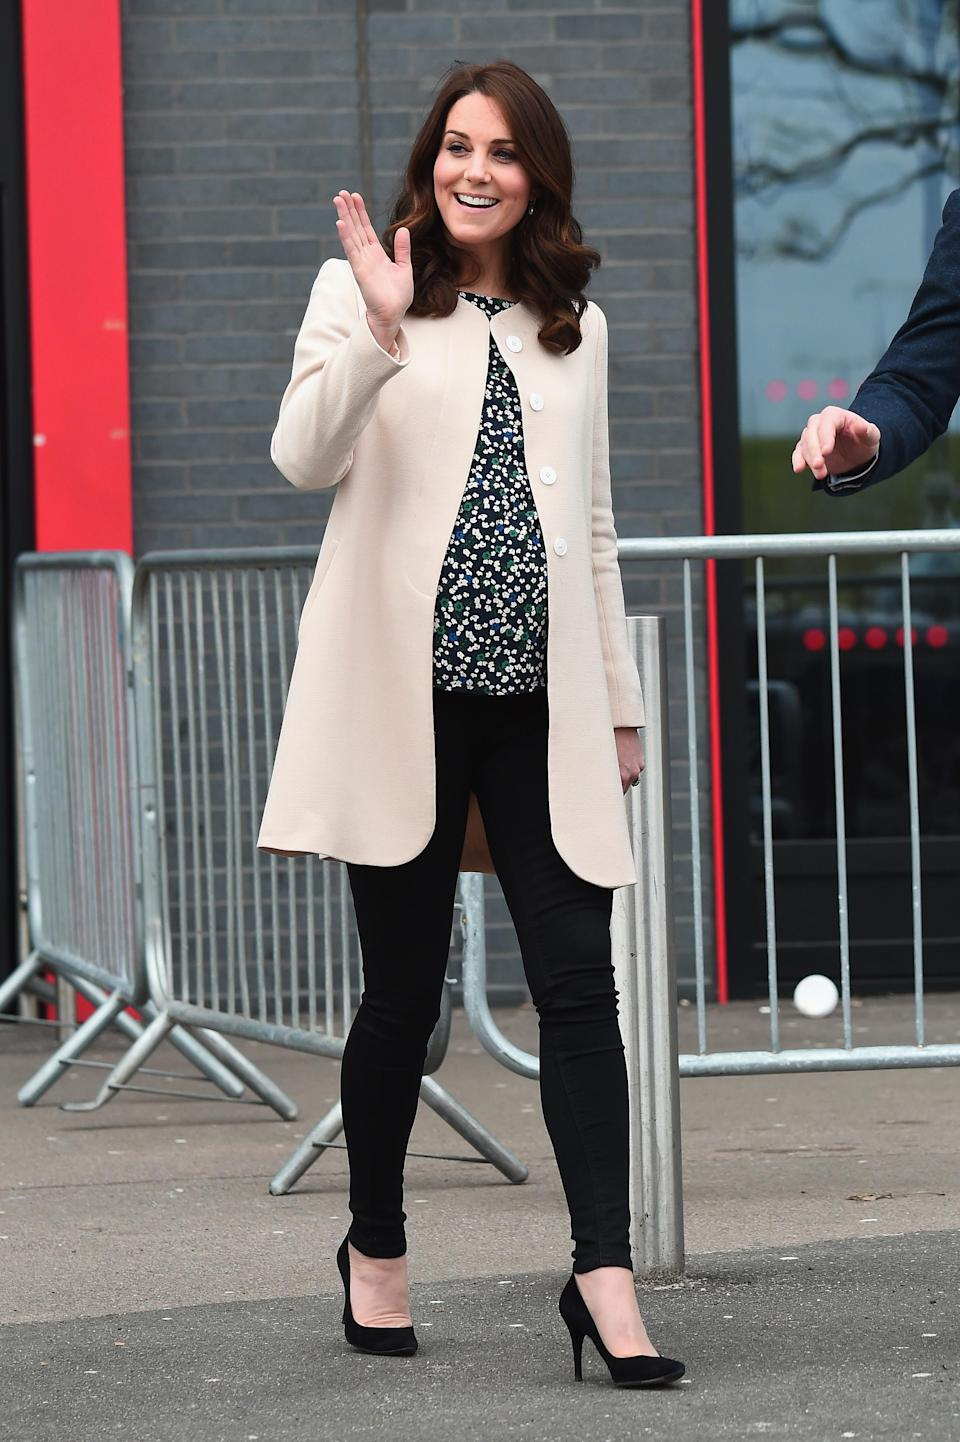 <p><strong>The occassion:</strong> A visit to SportsAid to undertake engagements celebrating the Commonwealth.<br><strong>The look:</strong> The 'Rosie' floral top by Hobbs, black skinny jeans, a cream coat and black pump heels.<br>[Photo: Getty] </p>